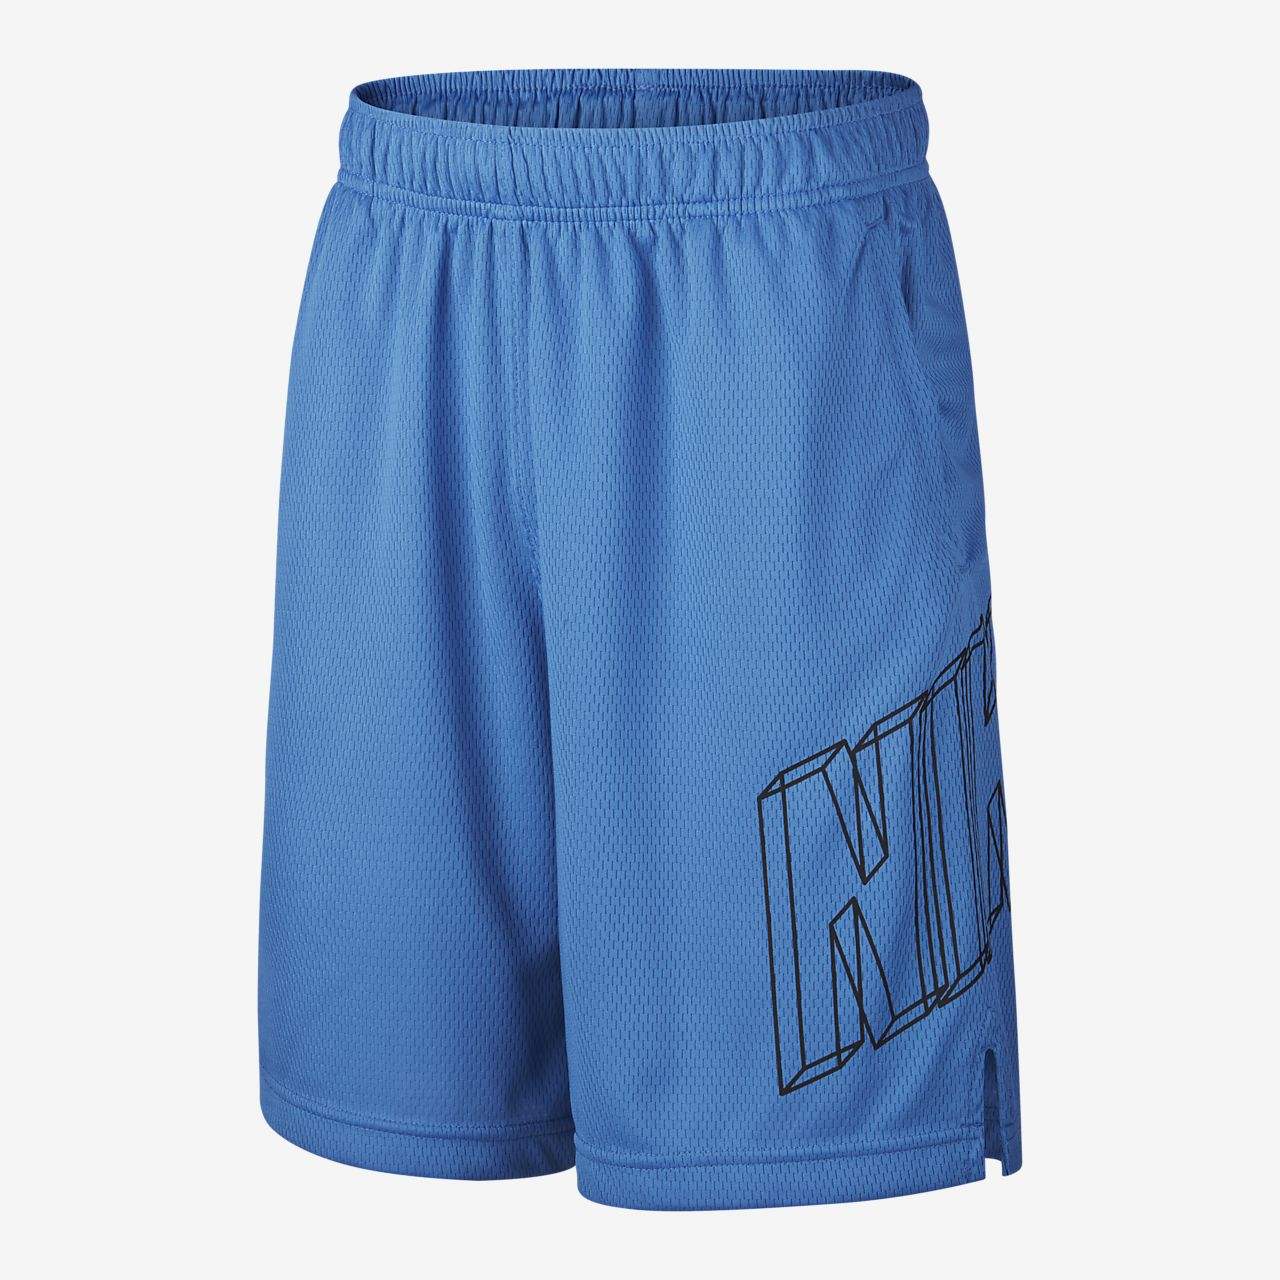 Nike Dri-FIT Trainingsshorts met graphic voor jongens